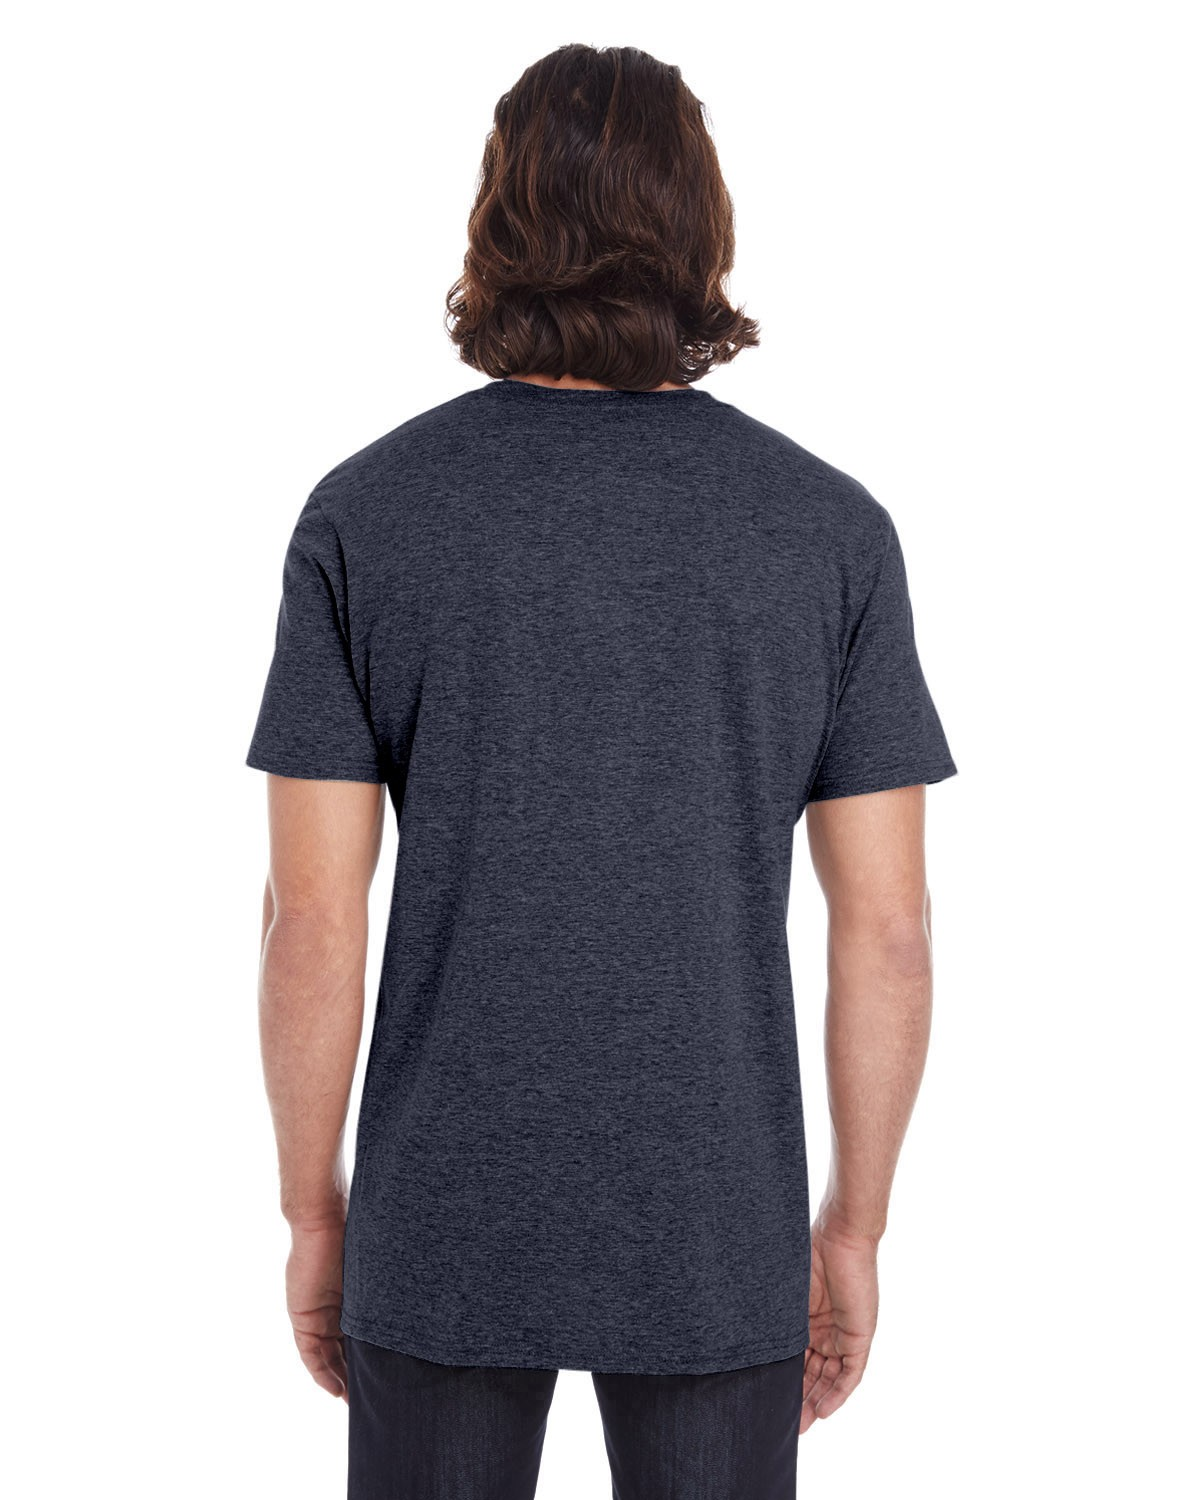 980 Anvil HEATHER NAVY